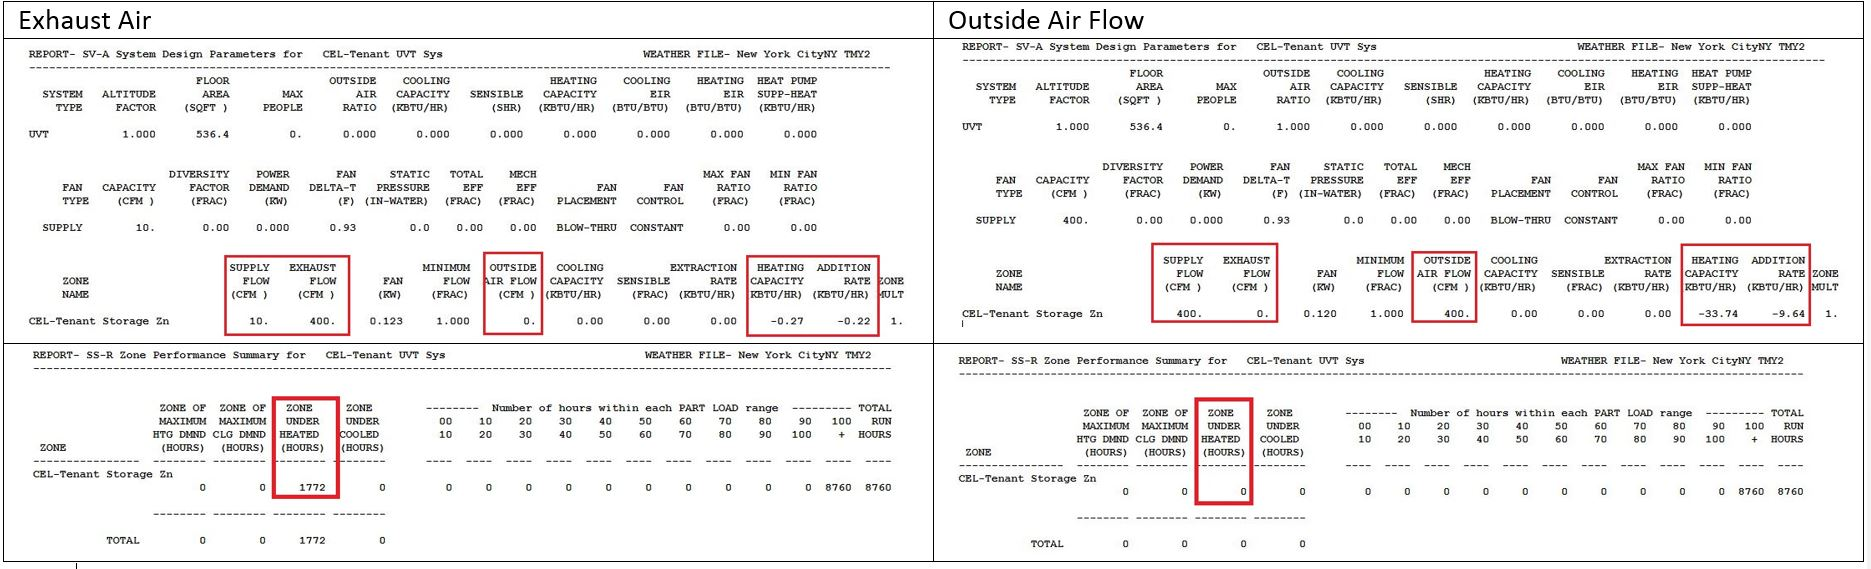 Comparison between exhaust air and outside air flow